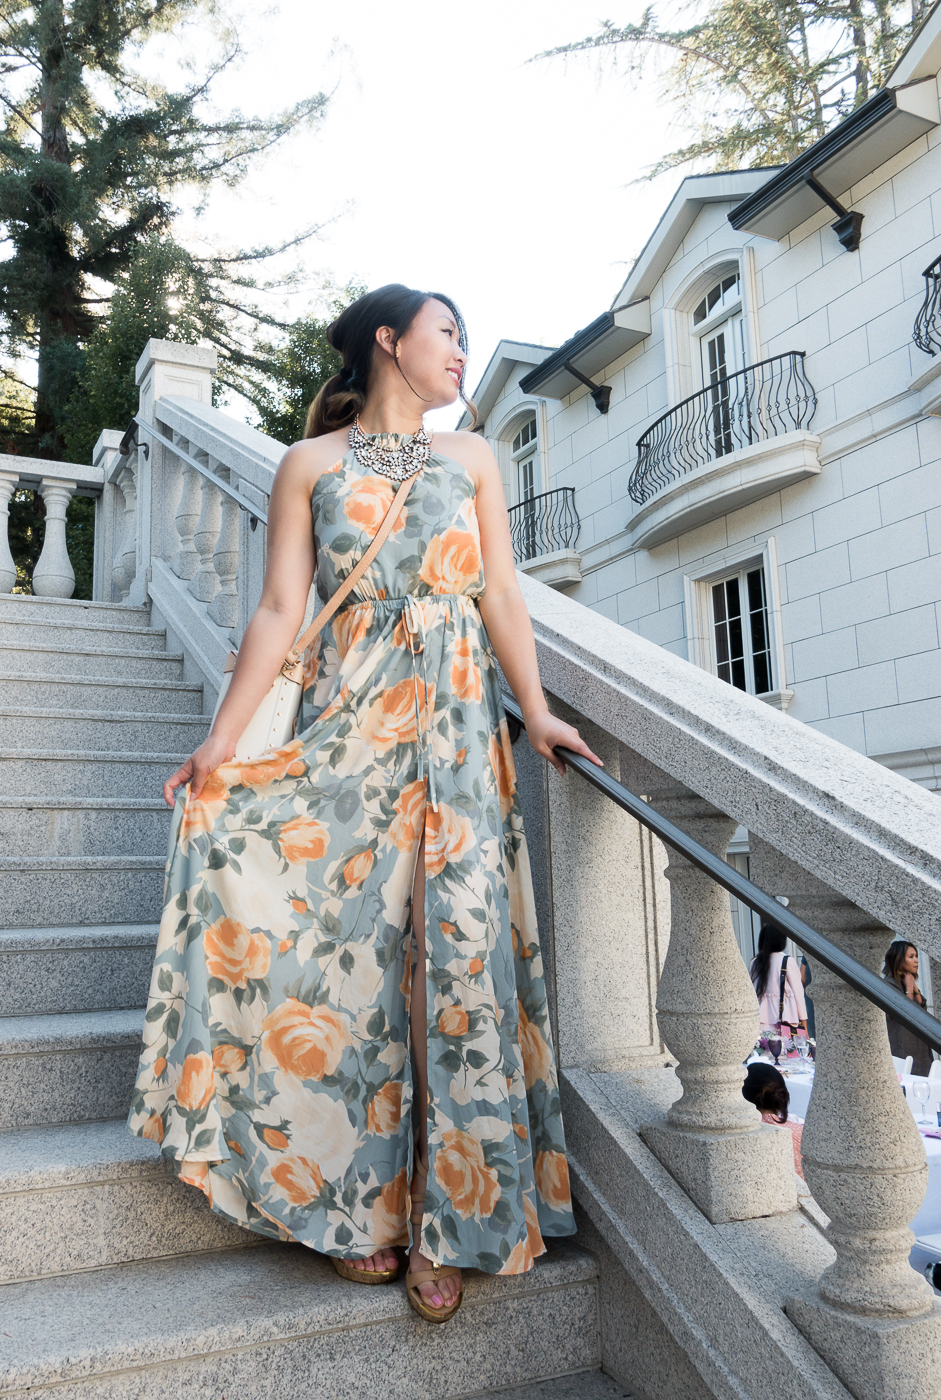 Lulu's Precious Memories Light Blue & Peach Floral Maxi Dress | The Chic Diary